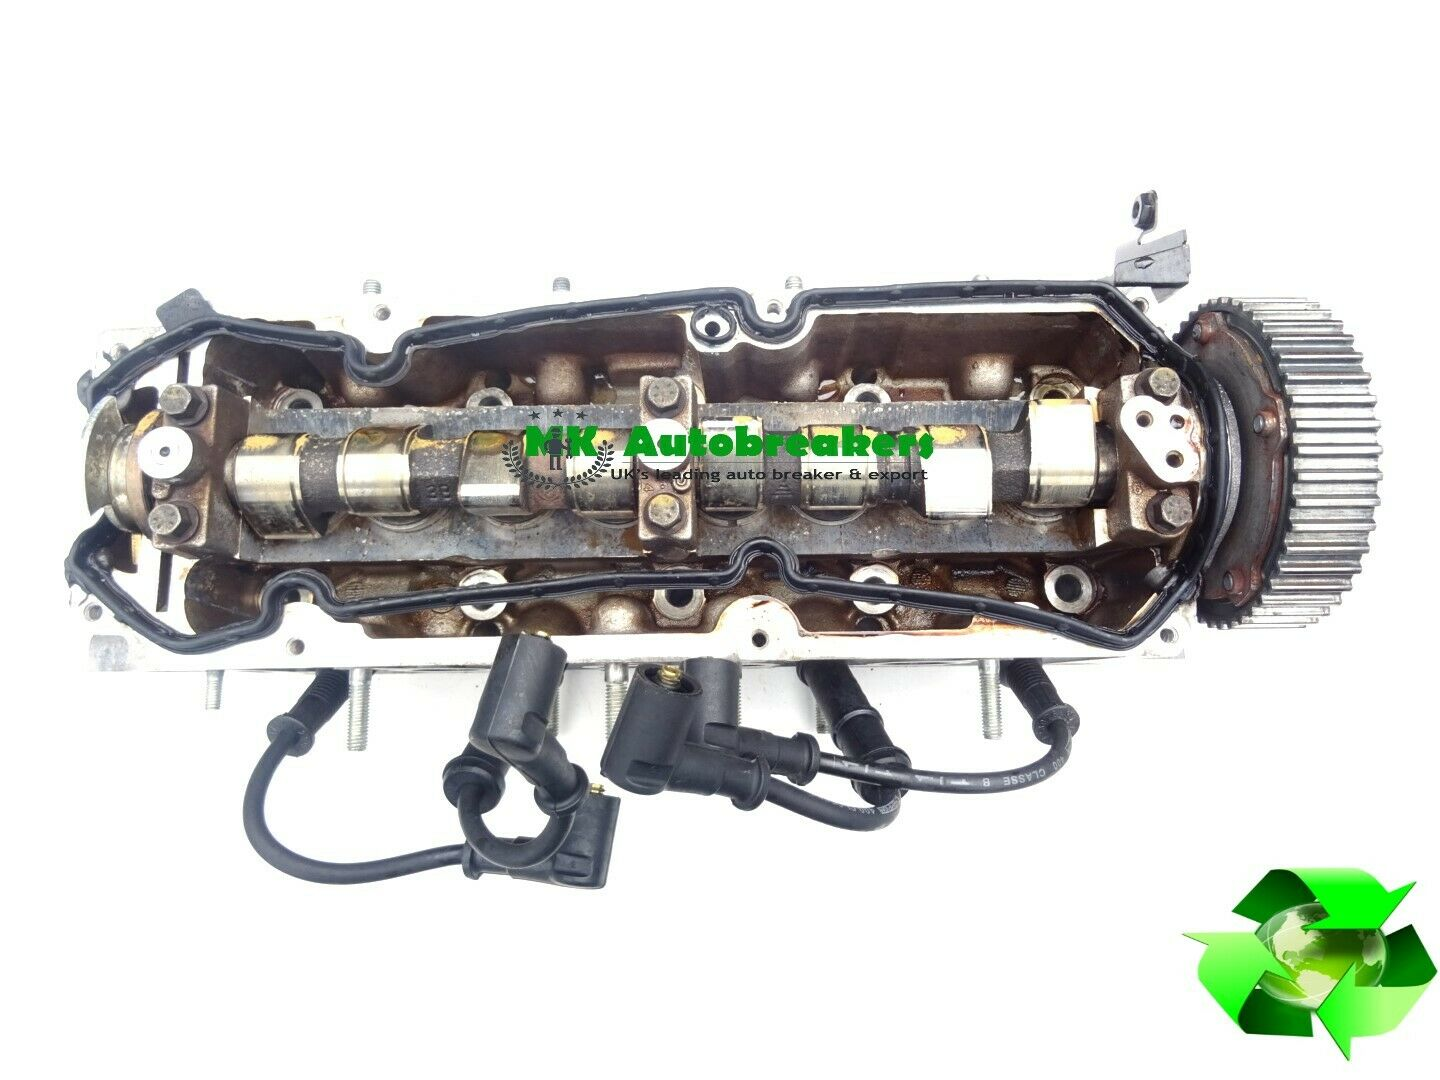 Fiat 500 1 2 Model From 2008-2018 Complete Engine Cylinder Head